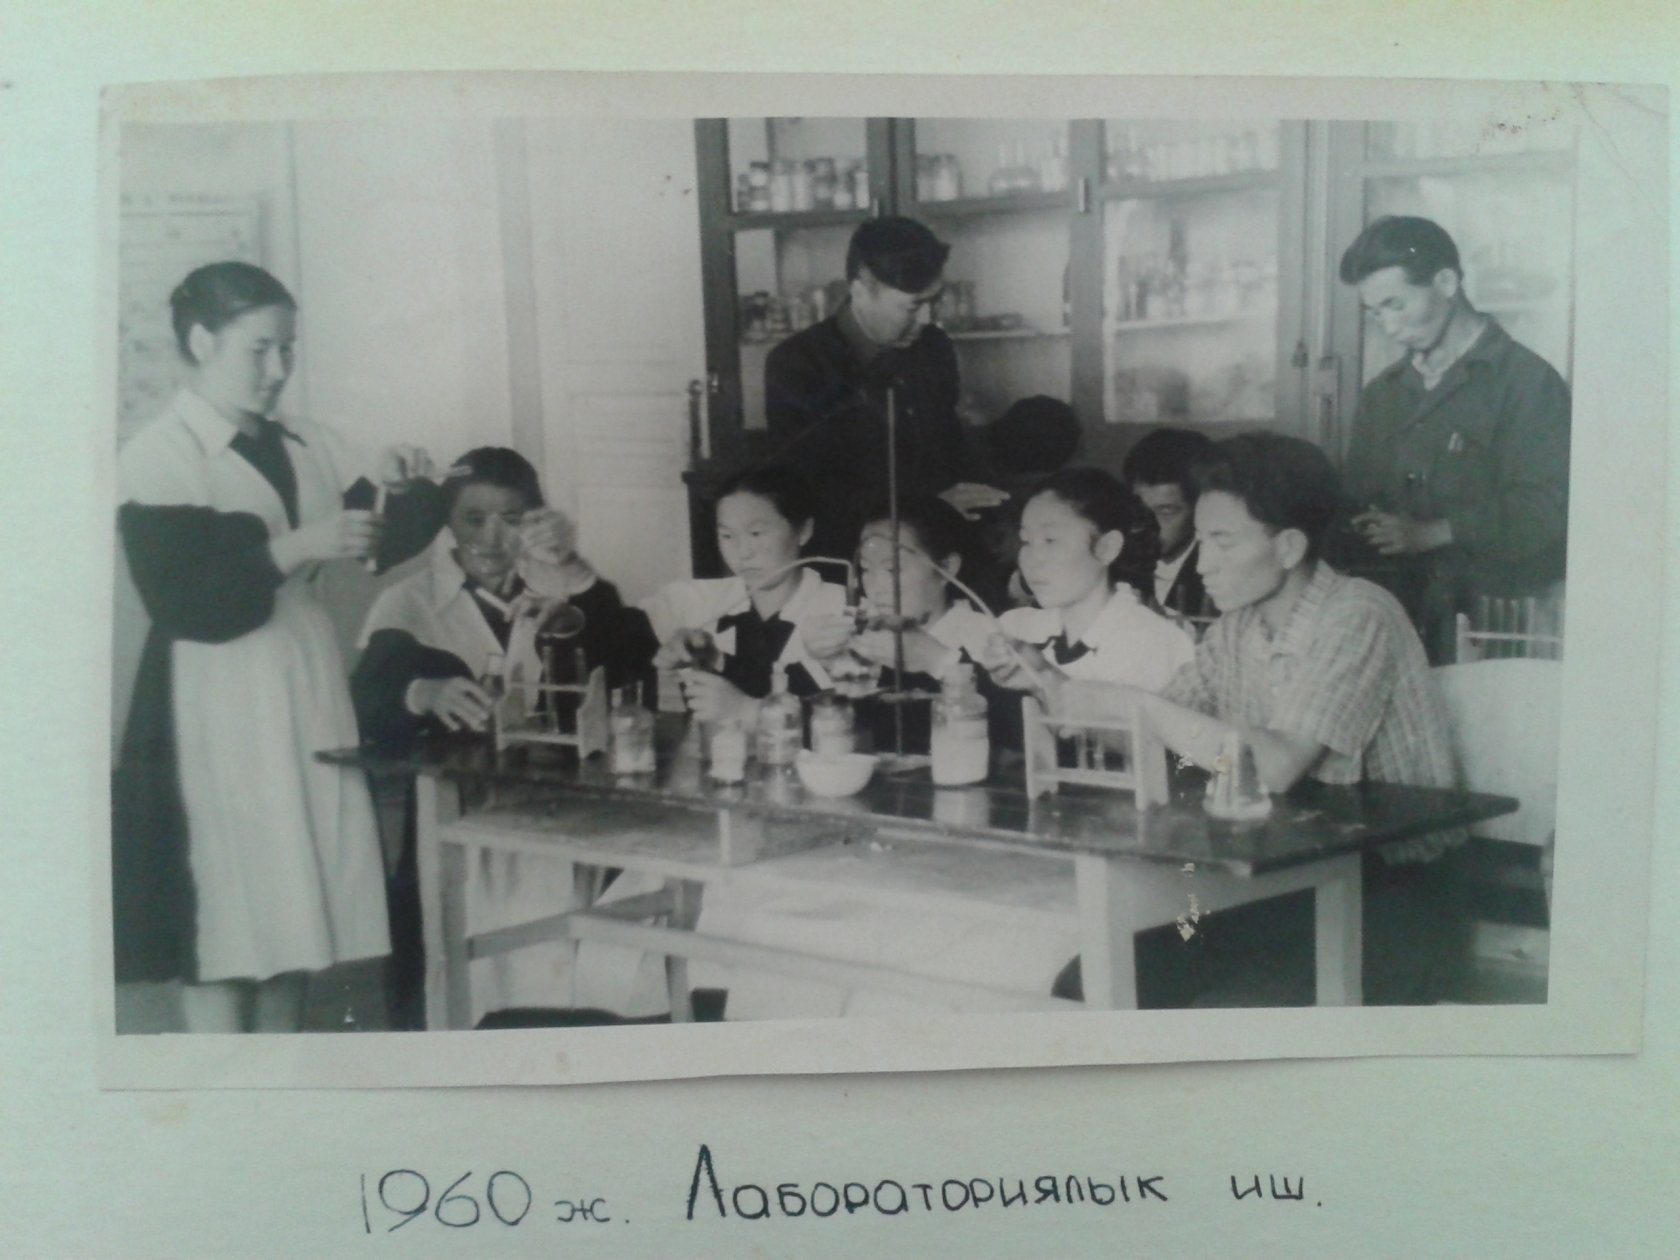 Students in a laboratory, 1960.